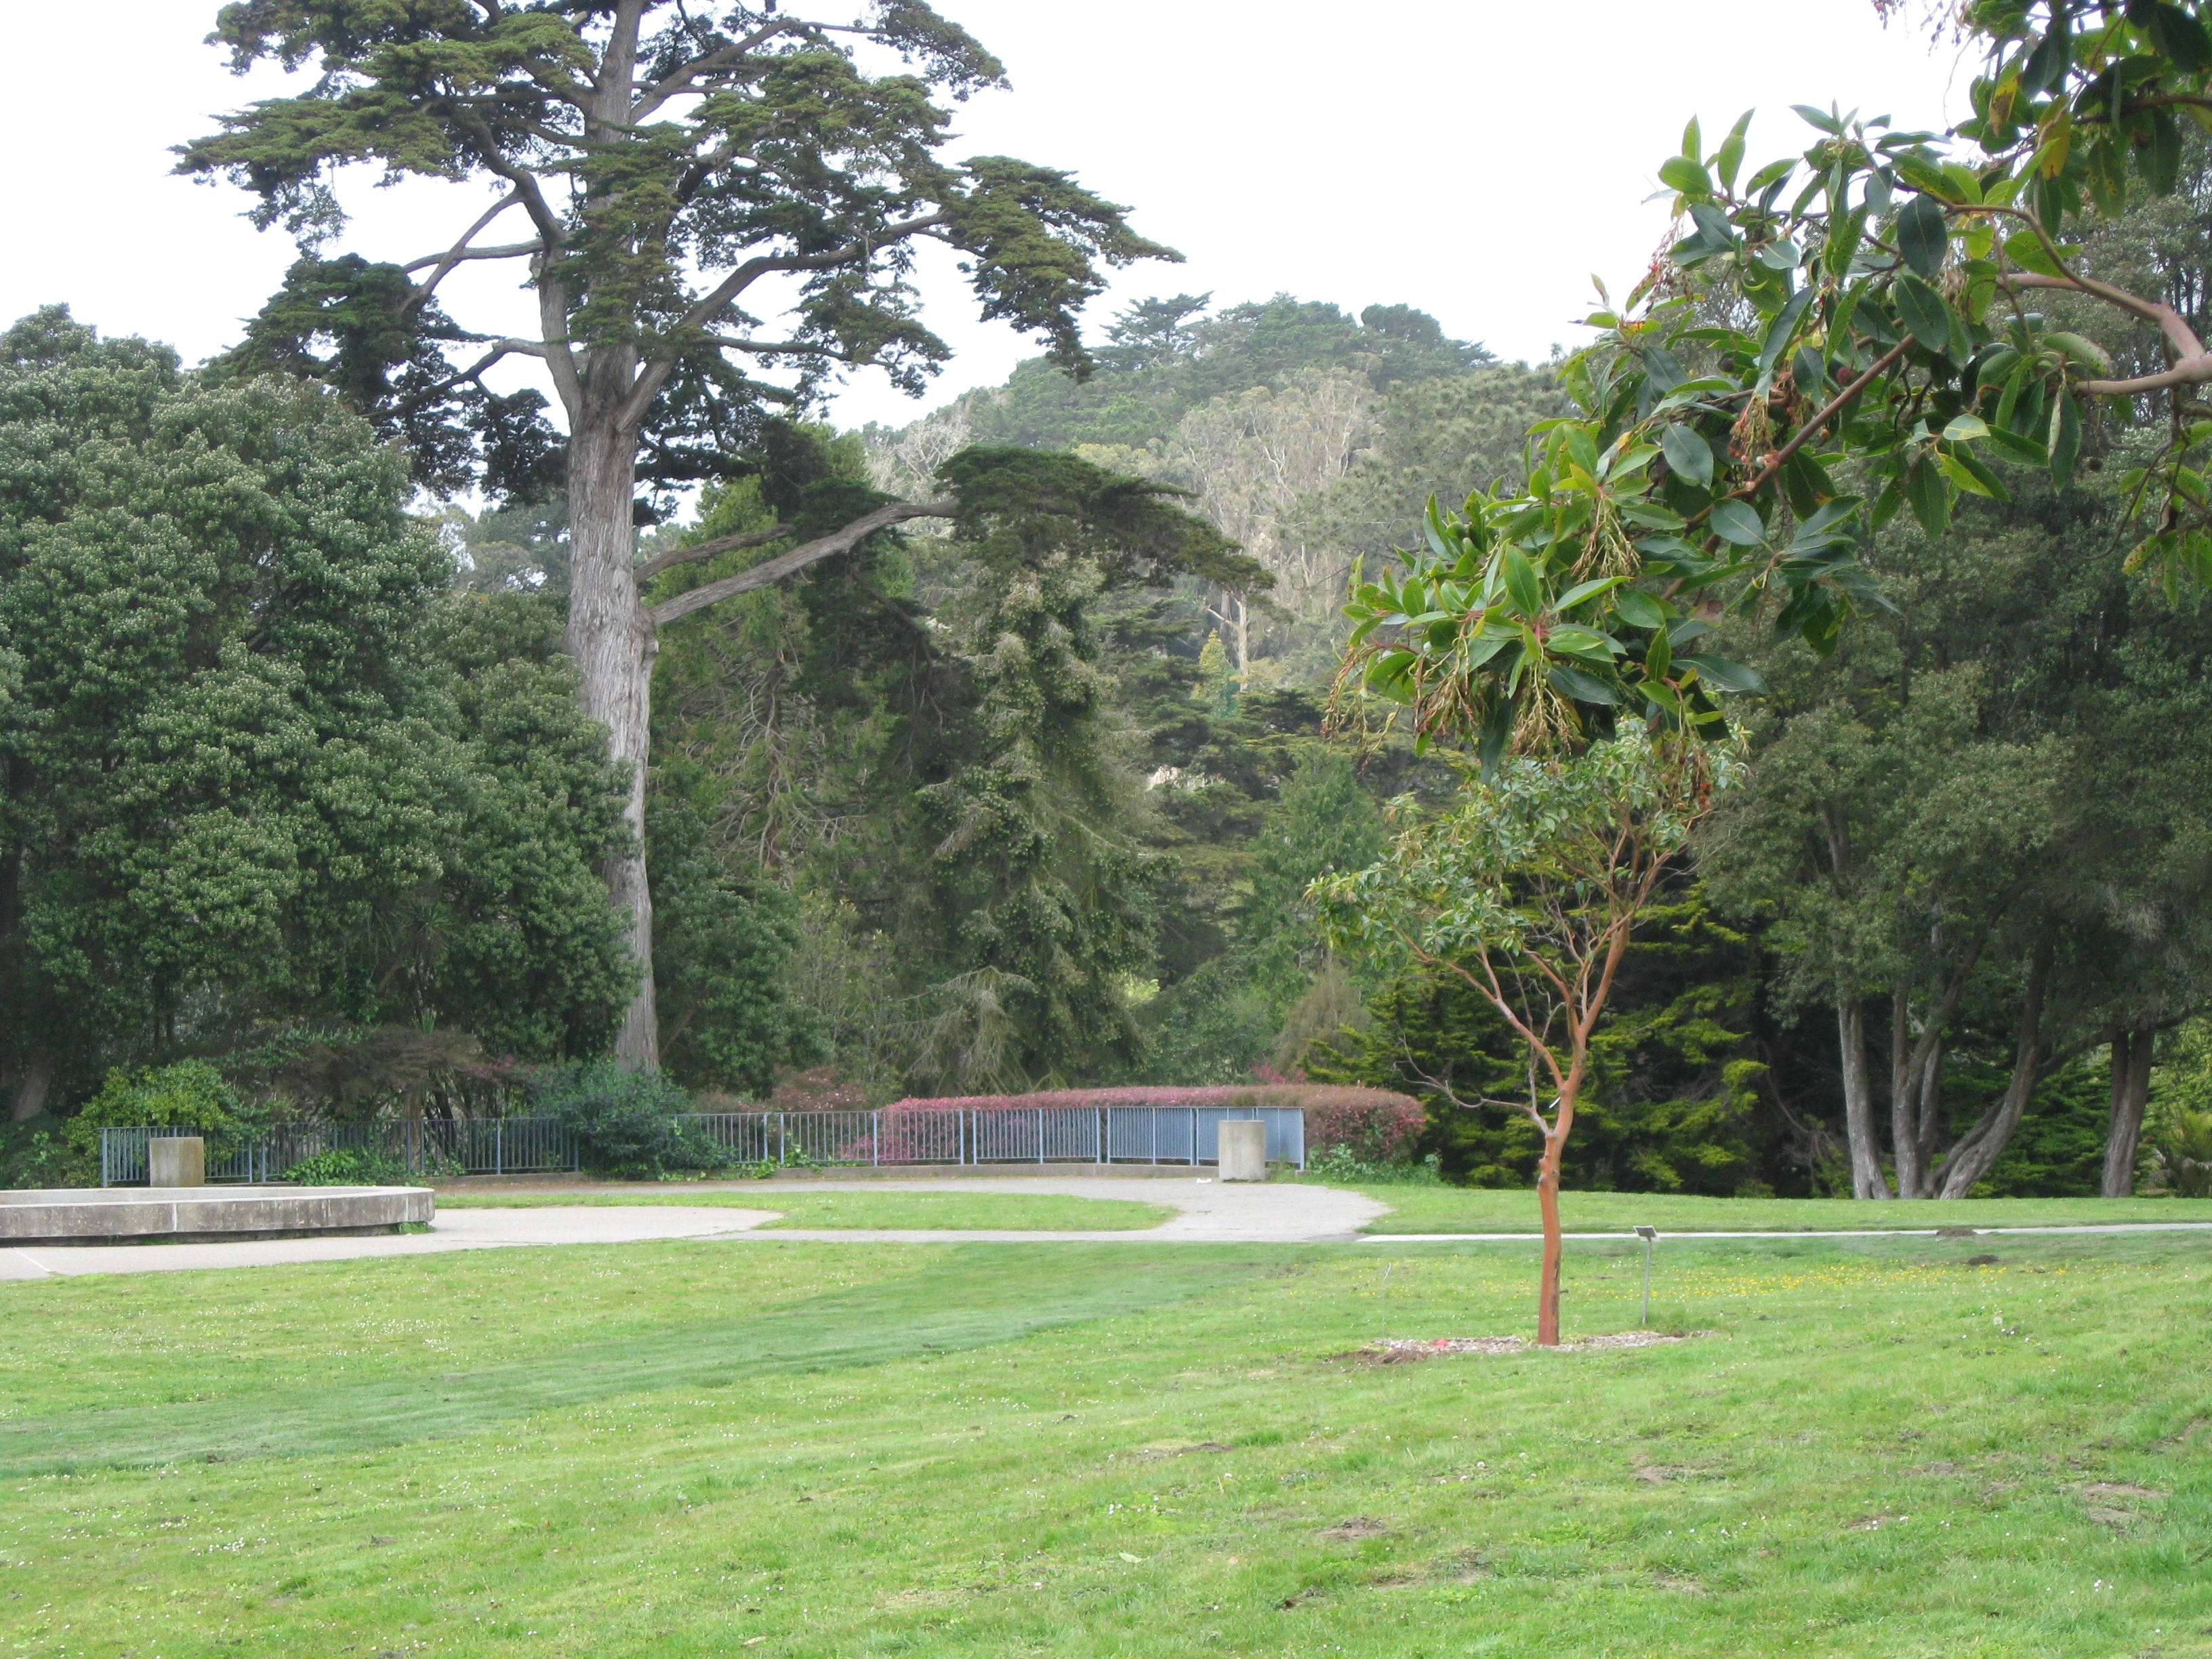 The Wide Open Spaces Of The Garden. The San Francisco Botanical Garden Is  An Unlikely Spot ...